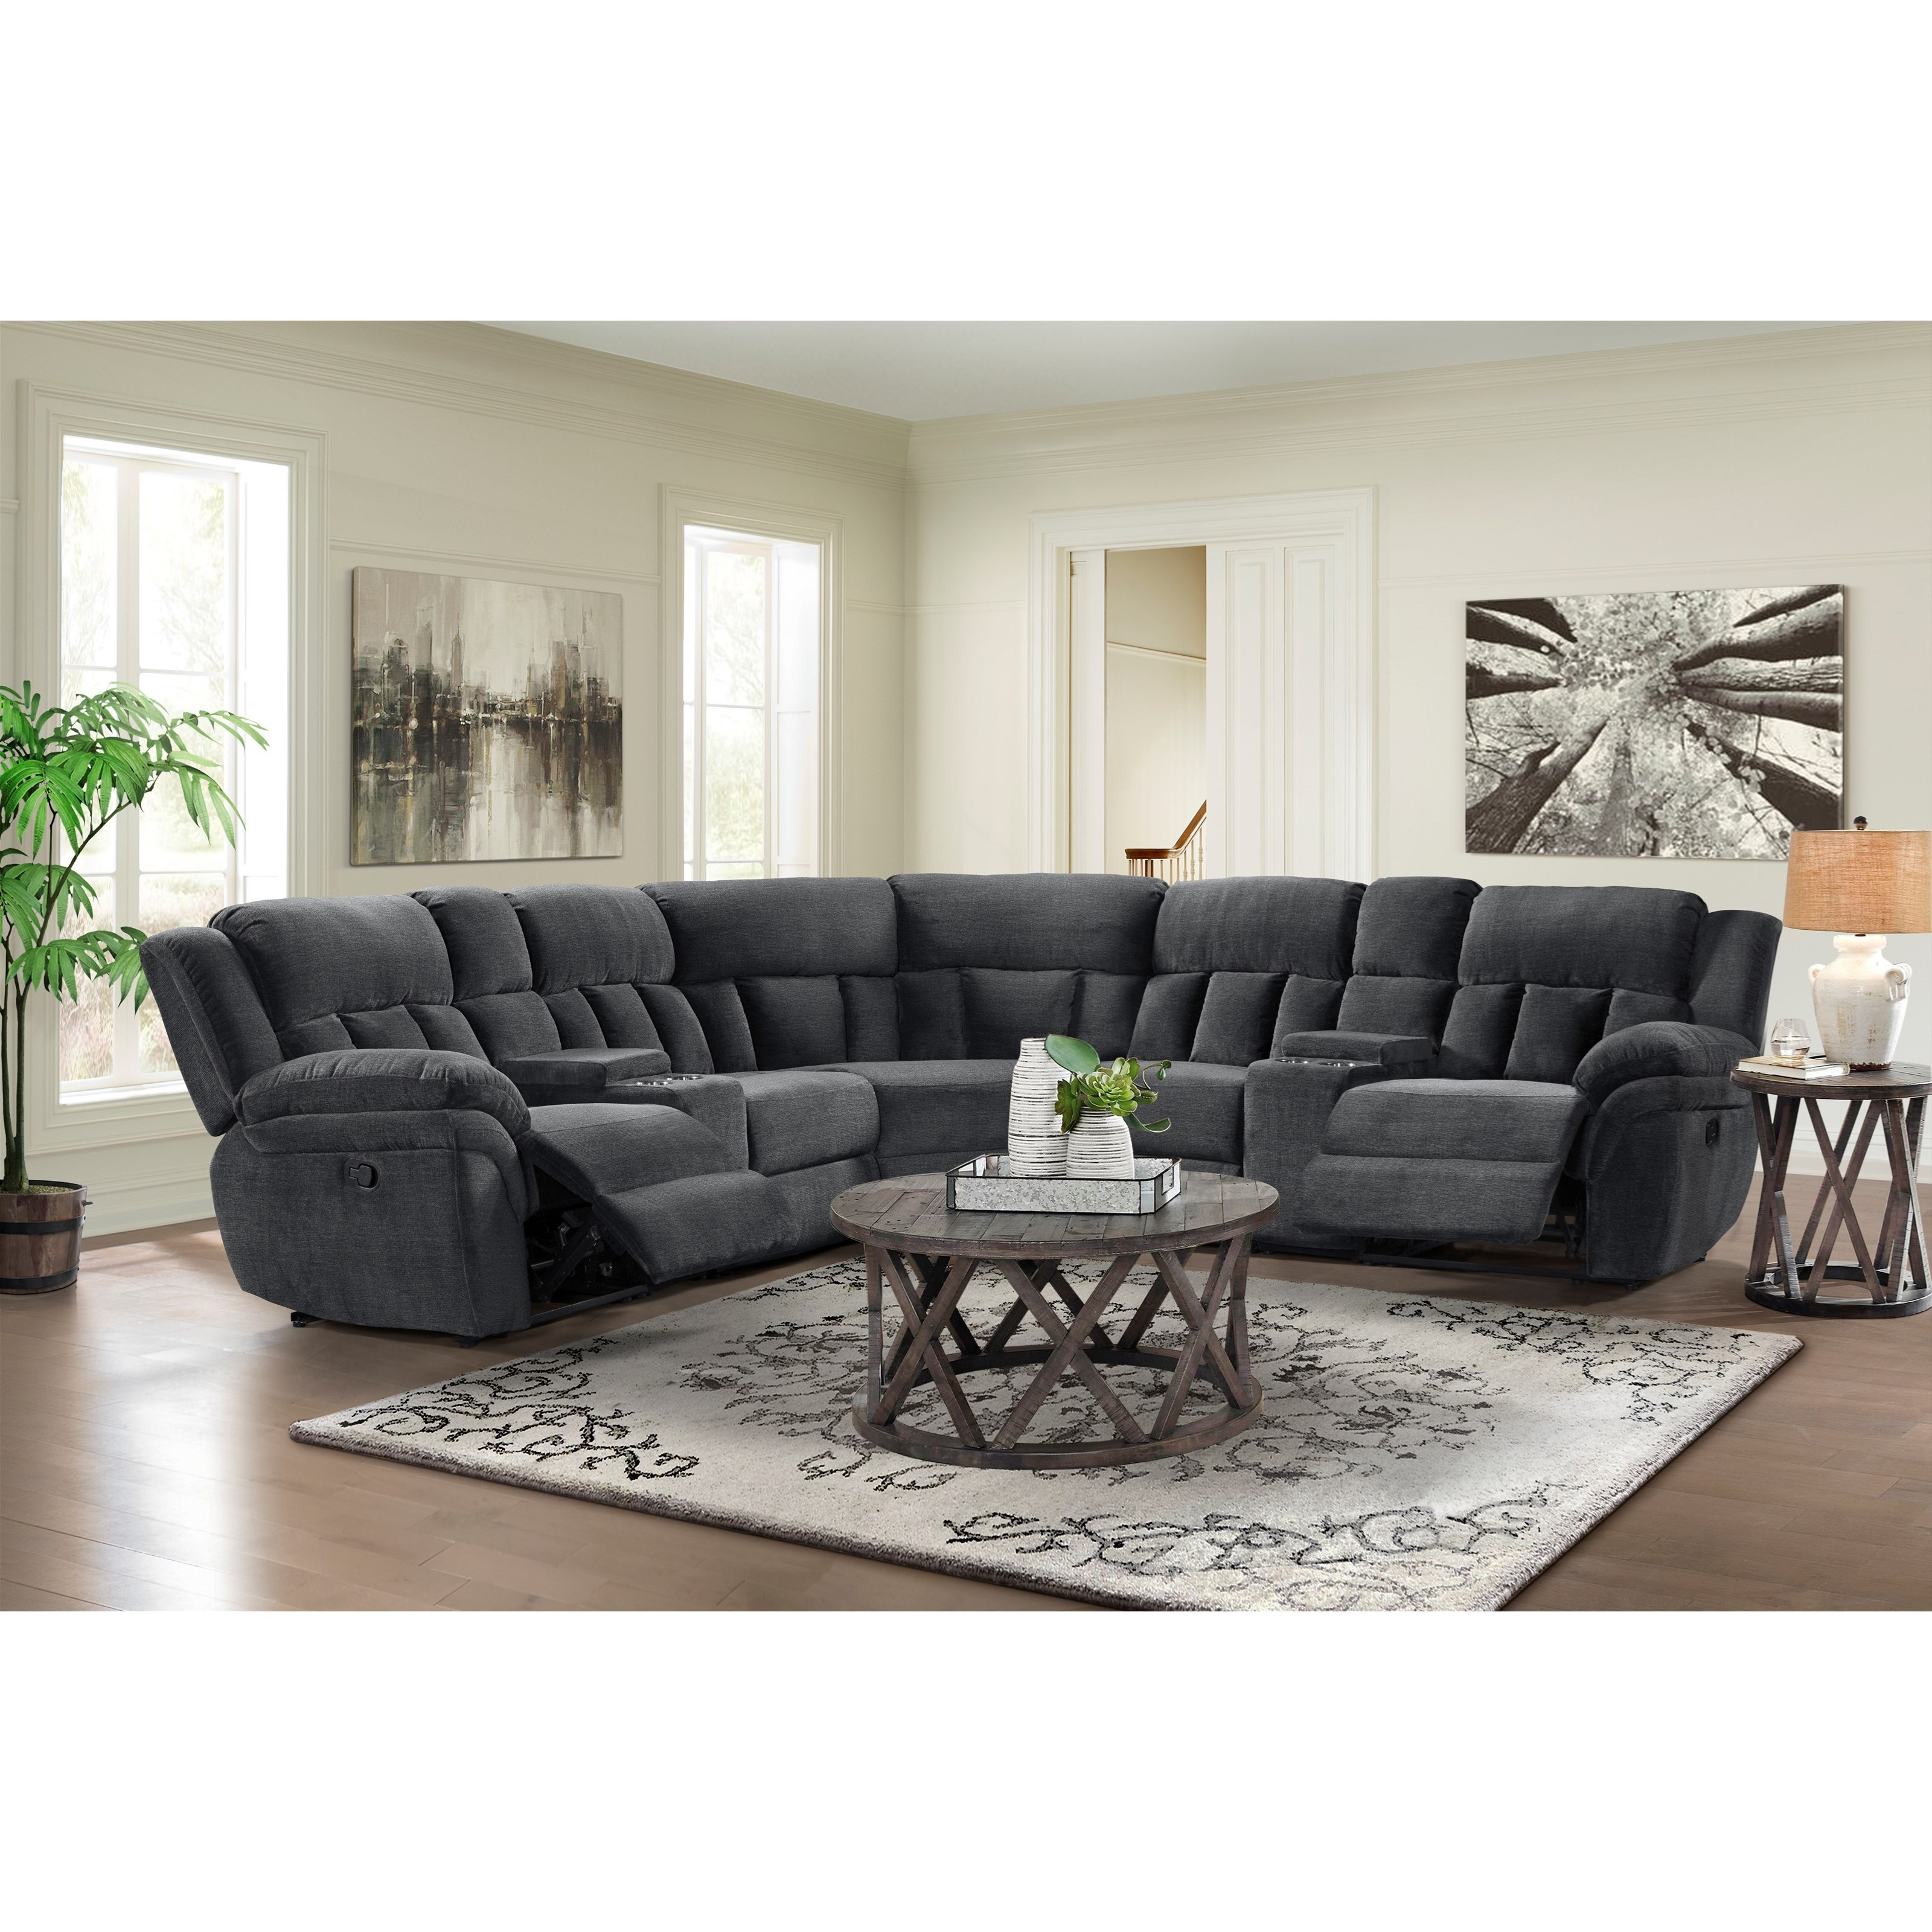 mccobb 4 seat reclining sectional sofa